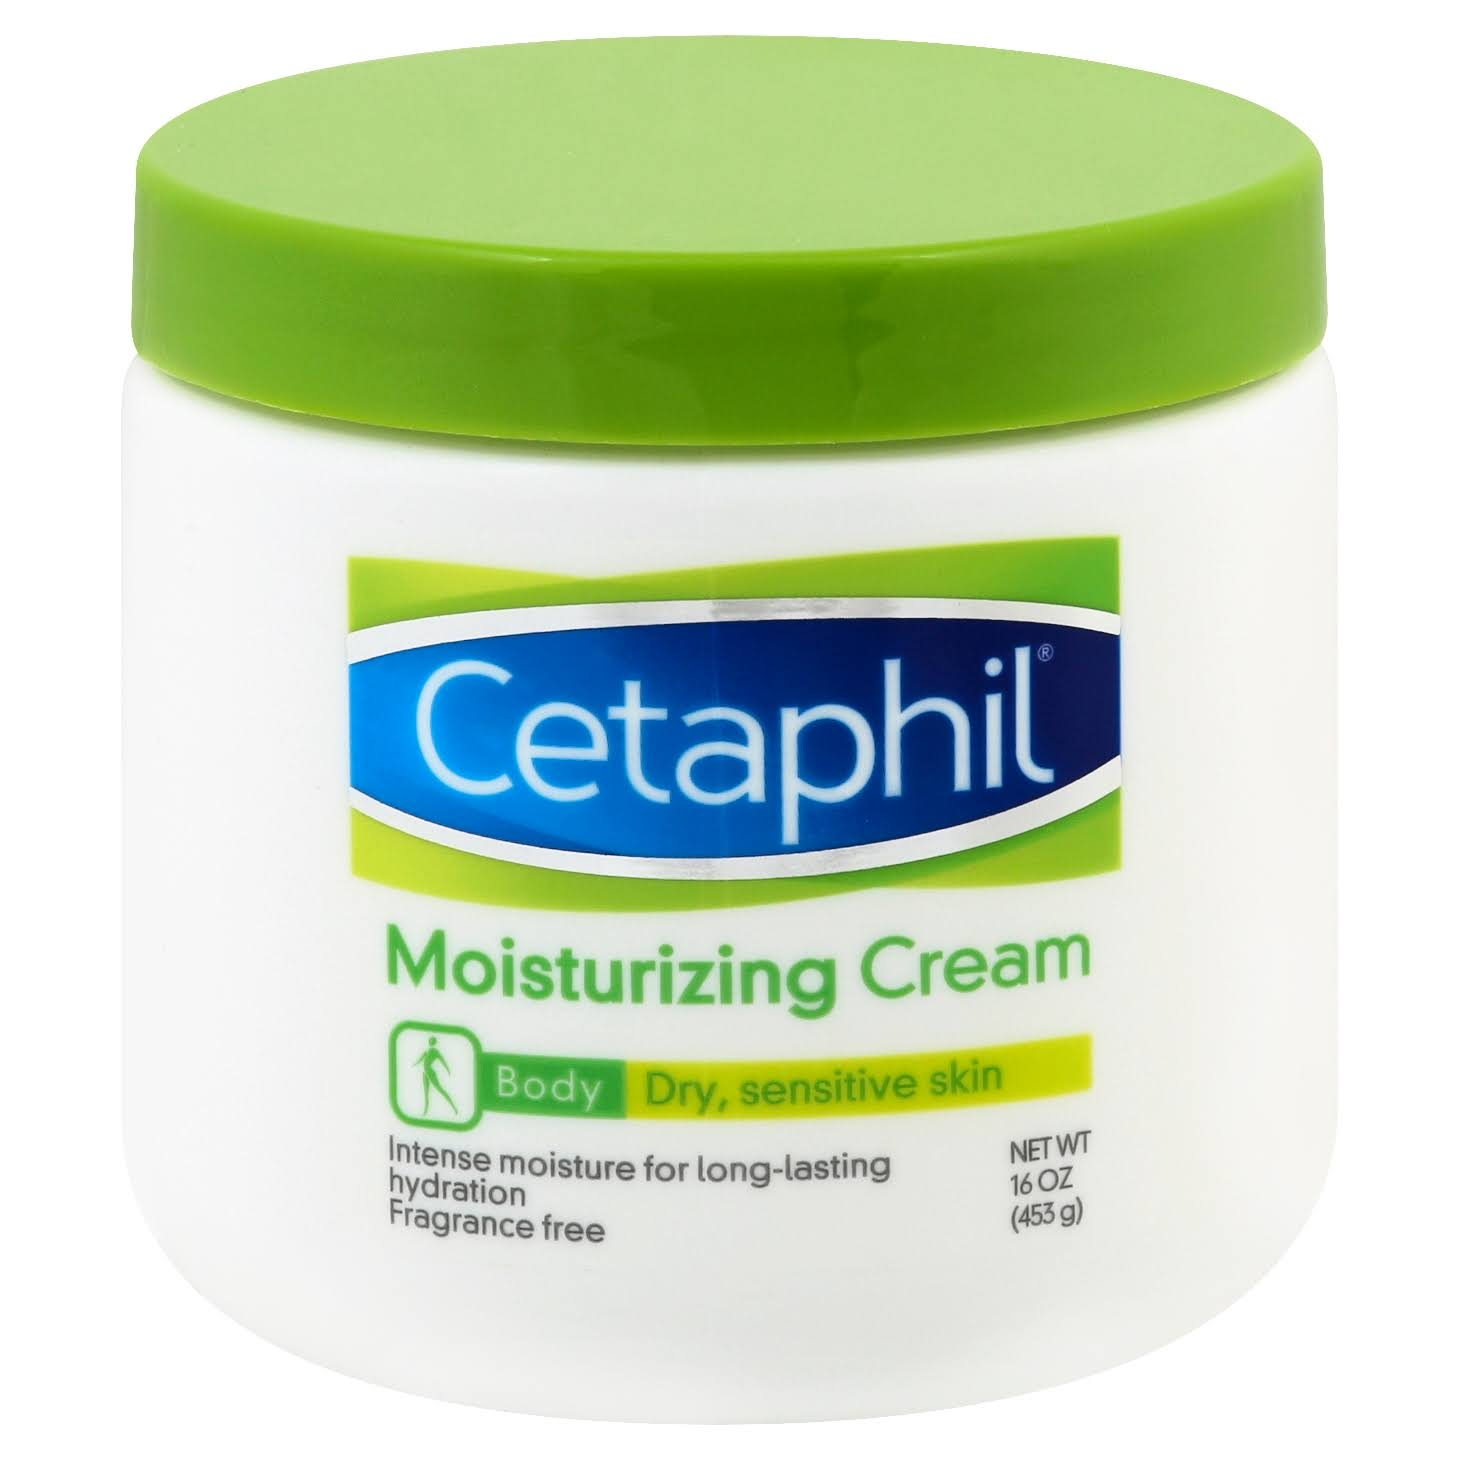 Cetaphil Moisturizing Cream - Fragrance Free, 16oz